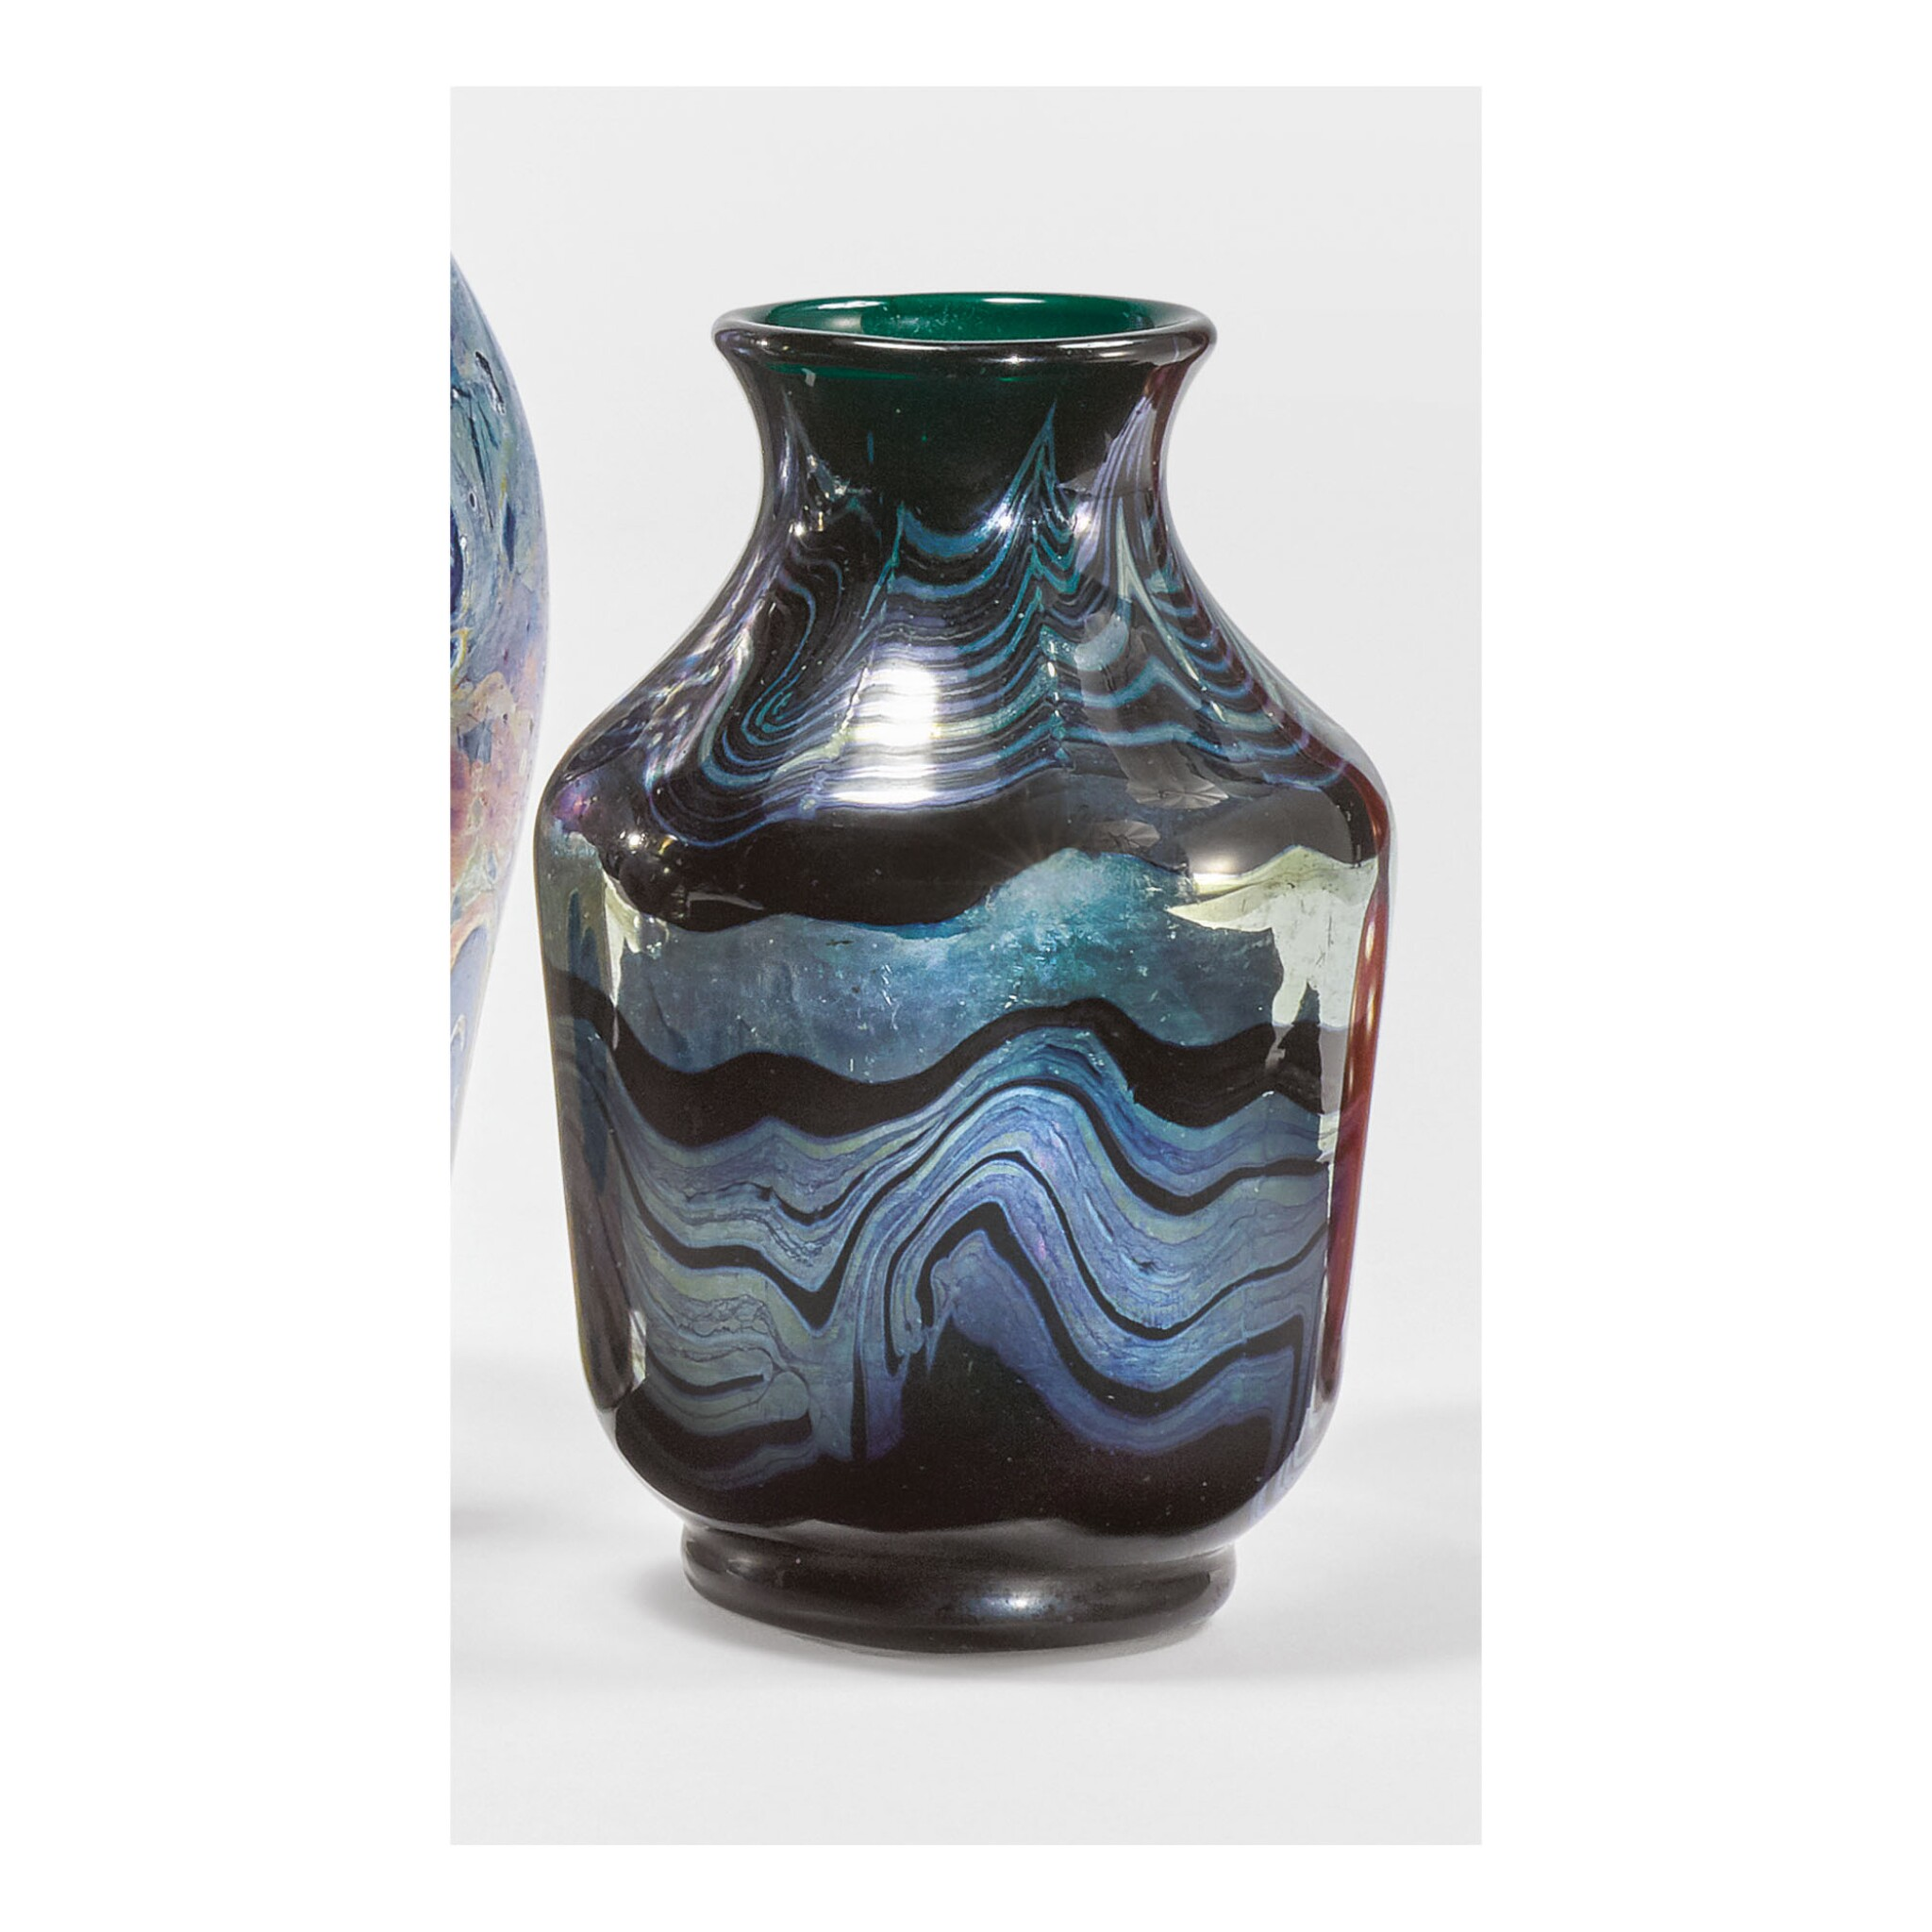 View 1 of Lot 16. TIFFANY STUDIOS | DECORATED VASE.